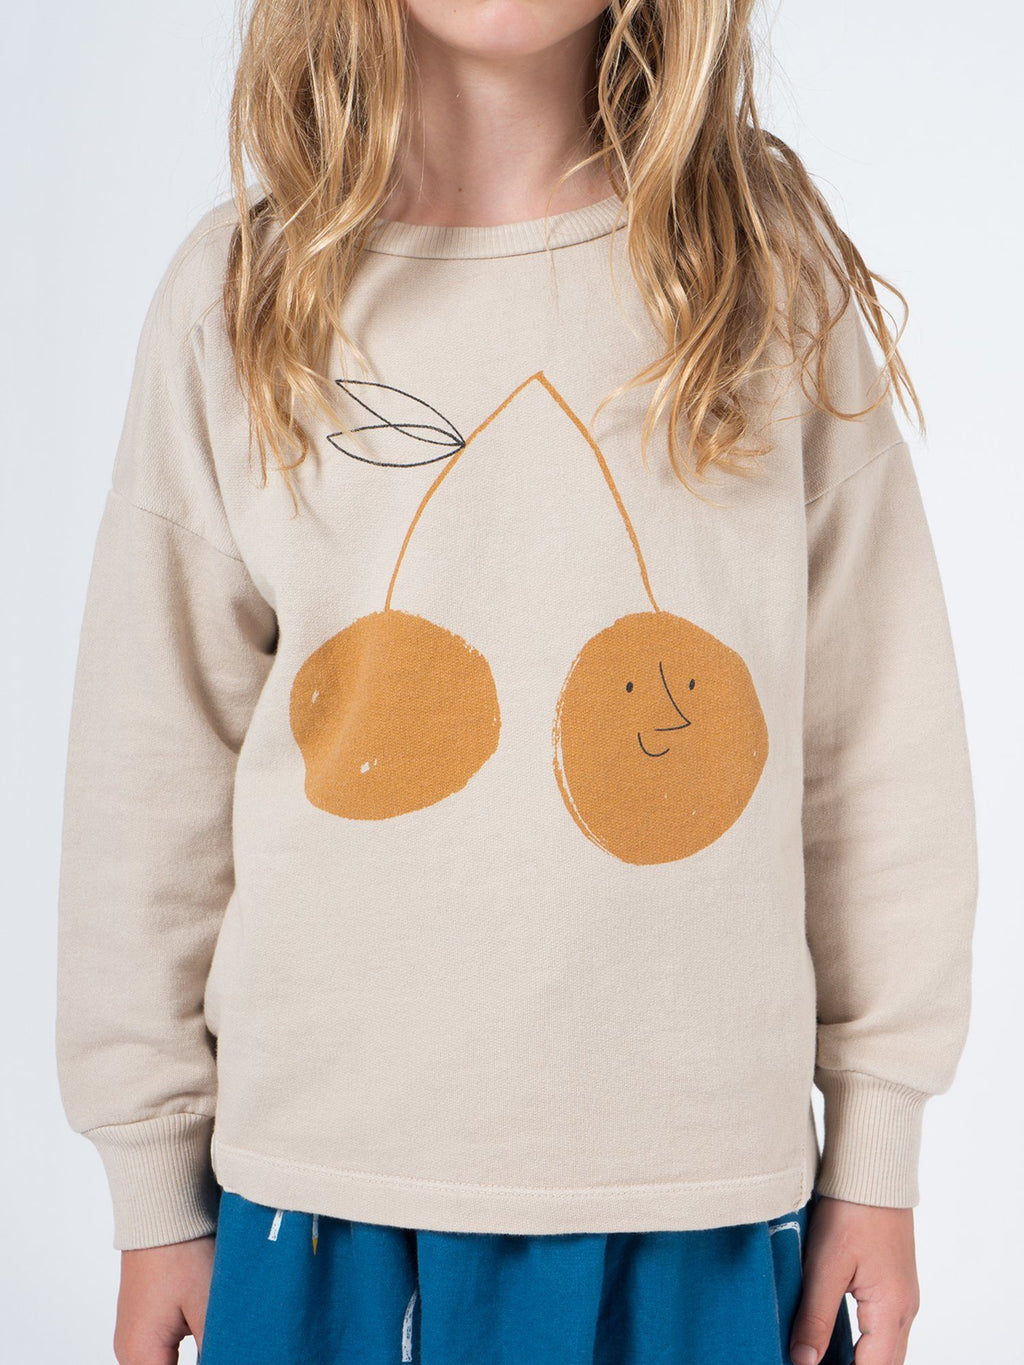 Cherry Sweatshirt Bobo Choses Top Bobo Choses